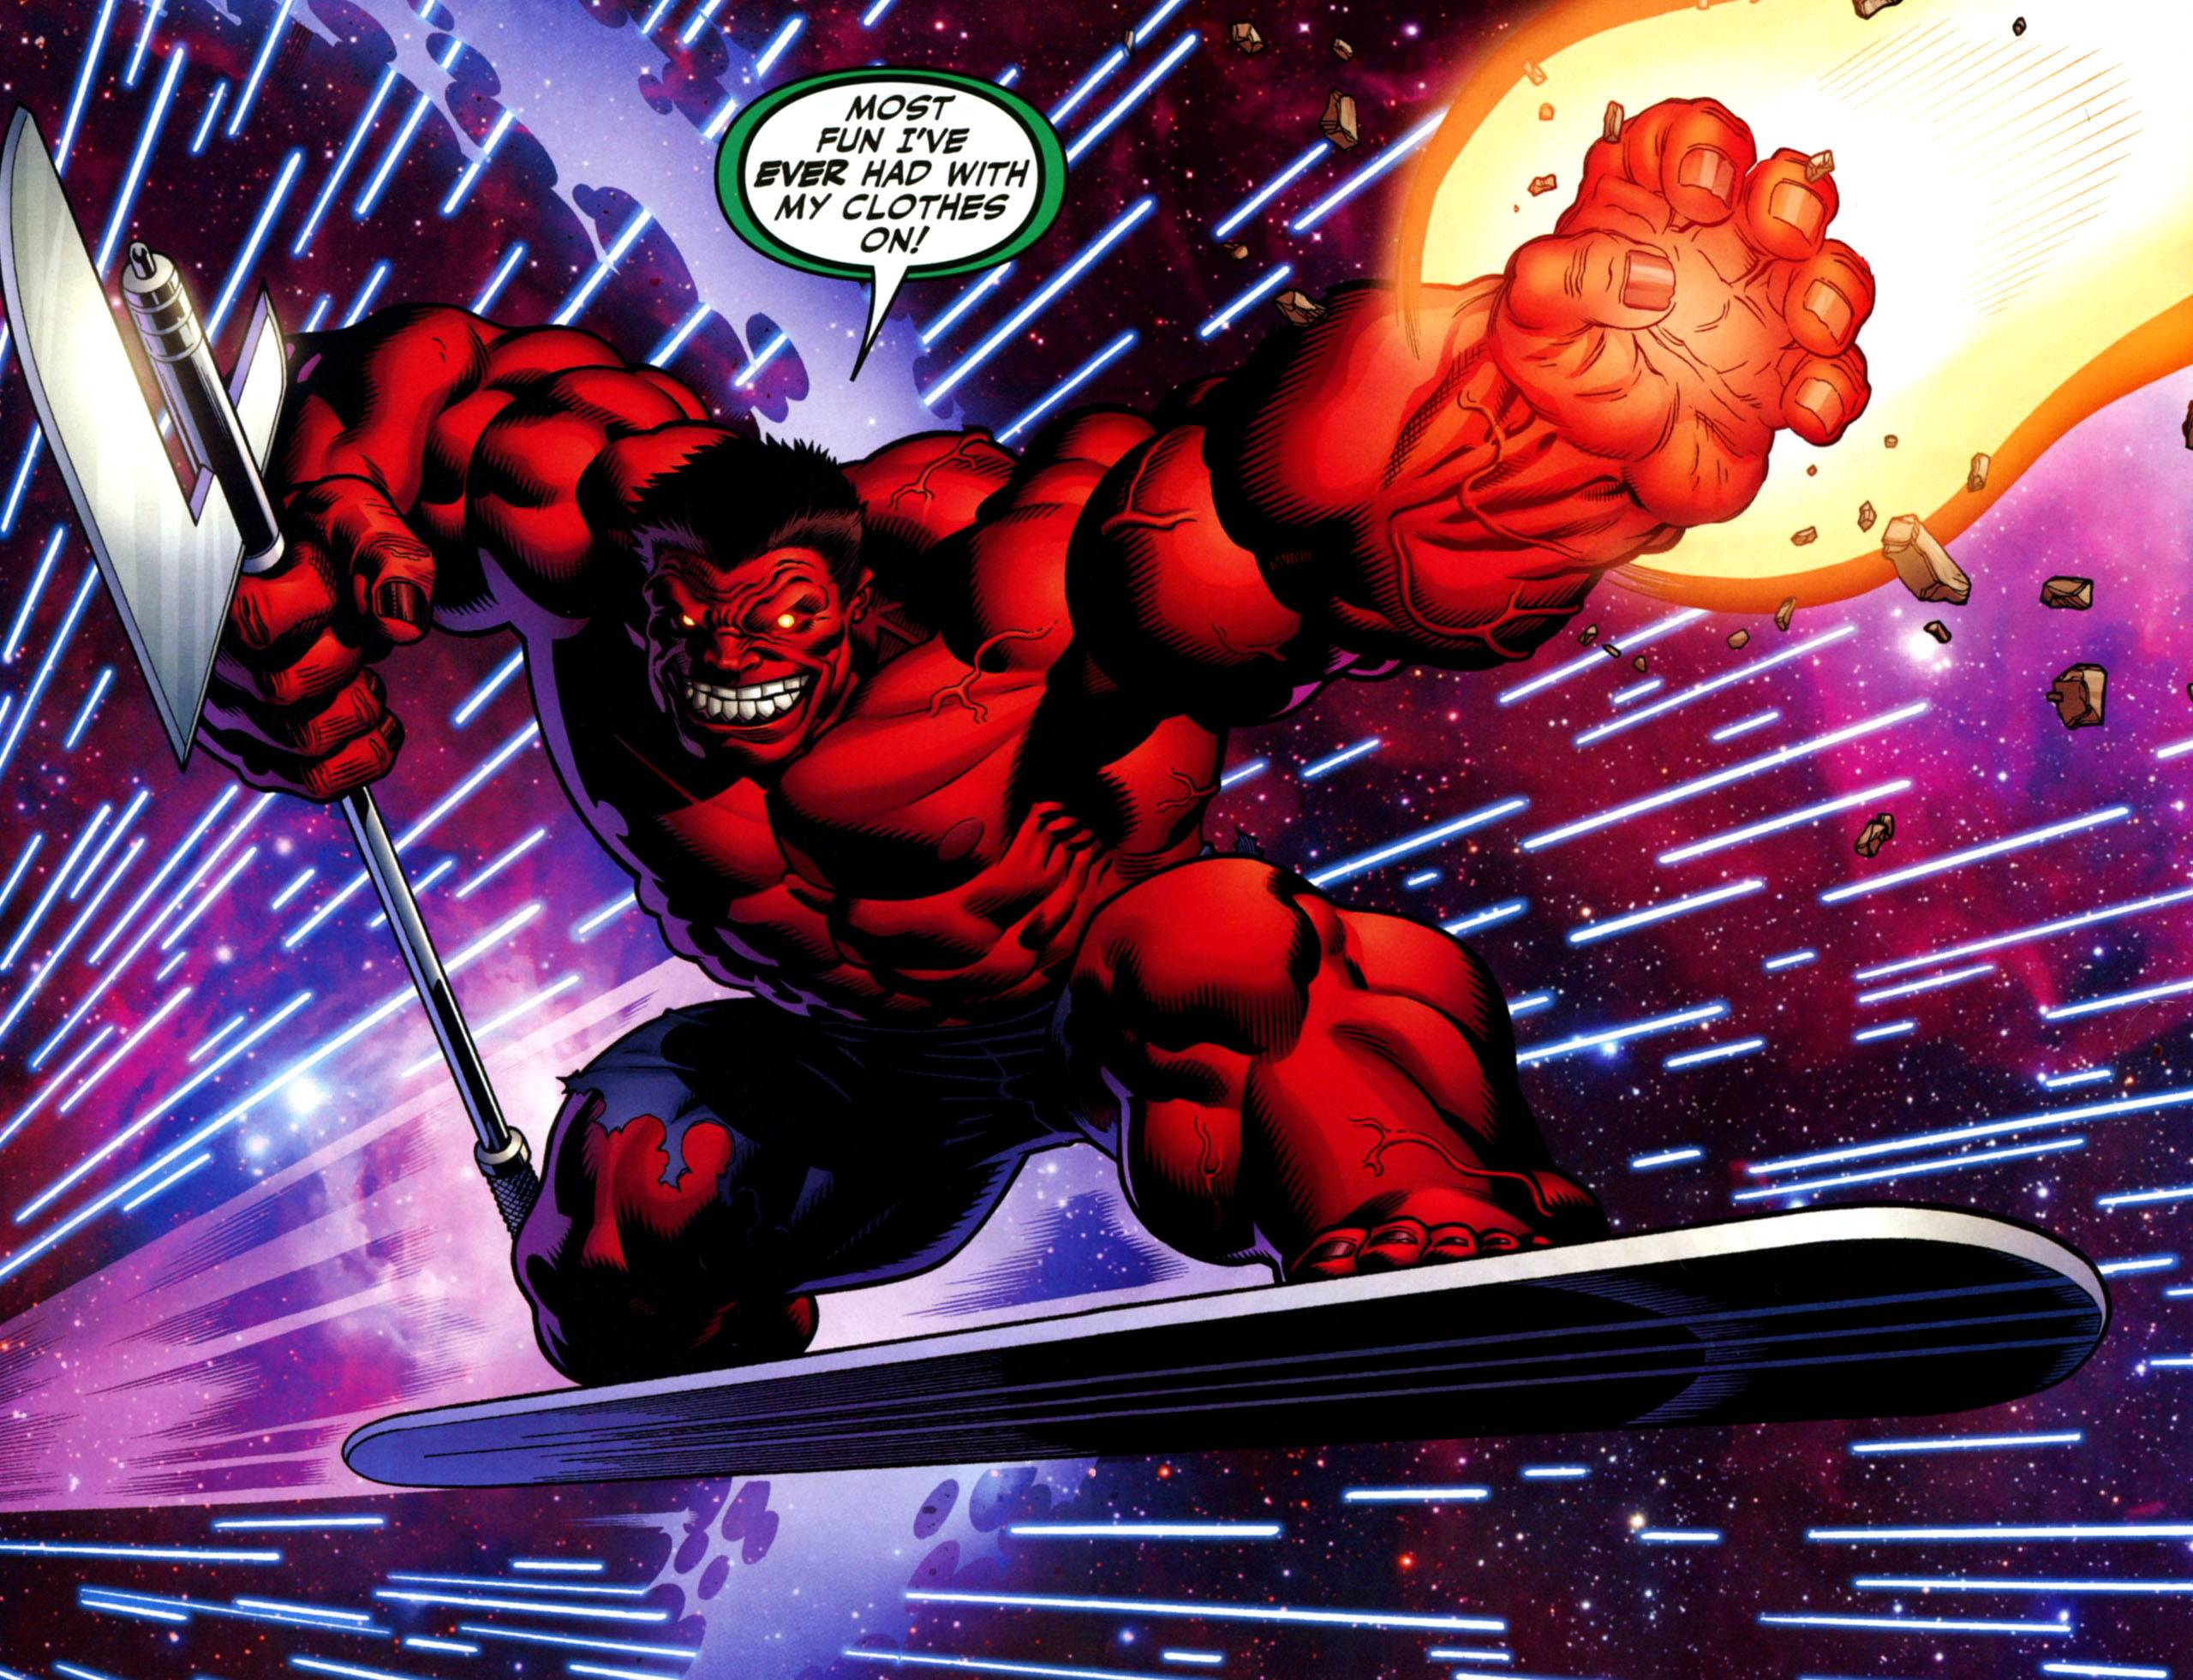 Red Hulk Wallpaper Backgrounds 2560x1961PX ~ Wallpapers Red Hulk